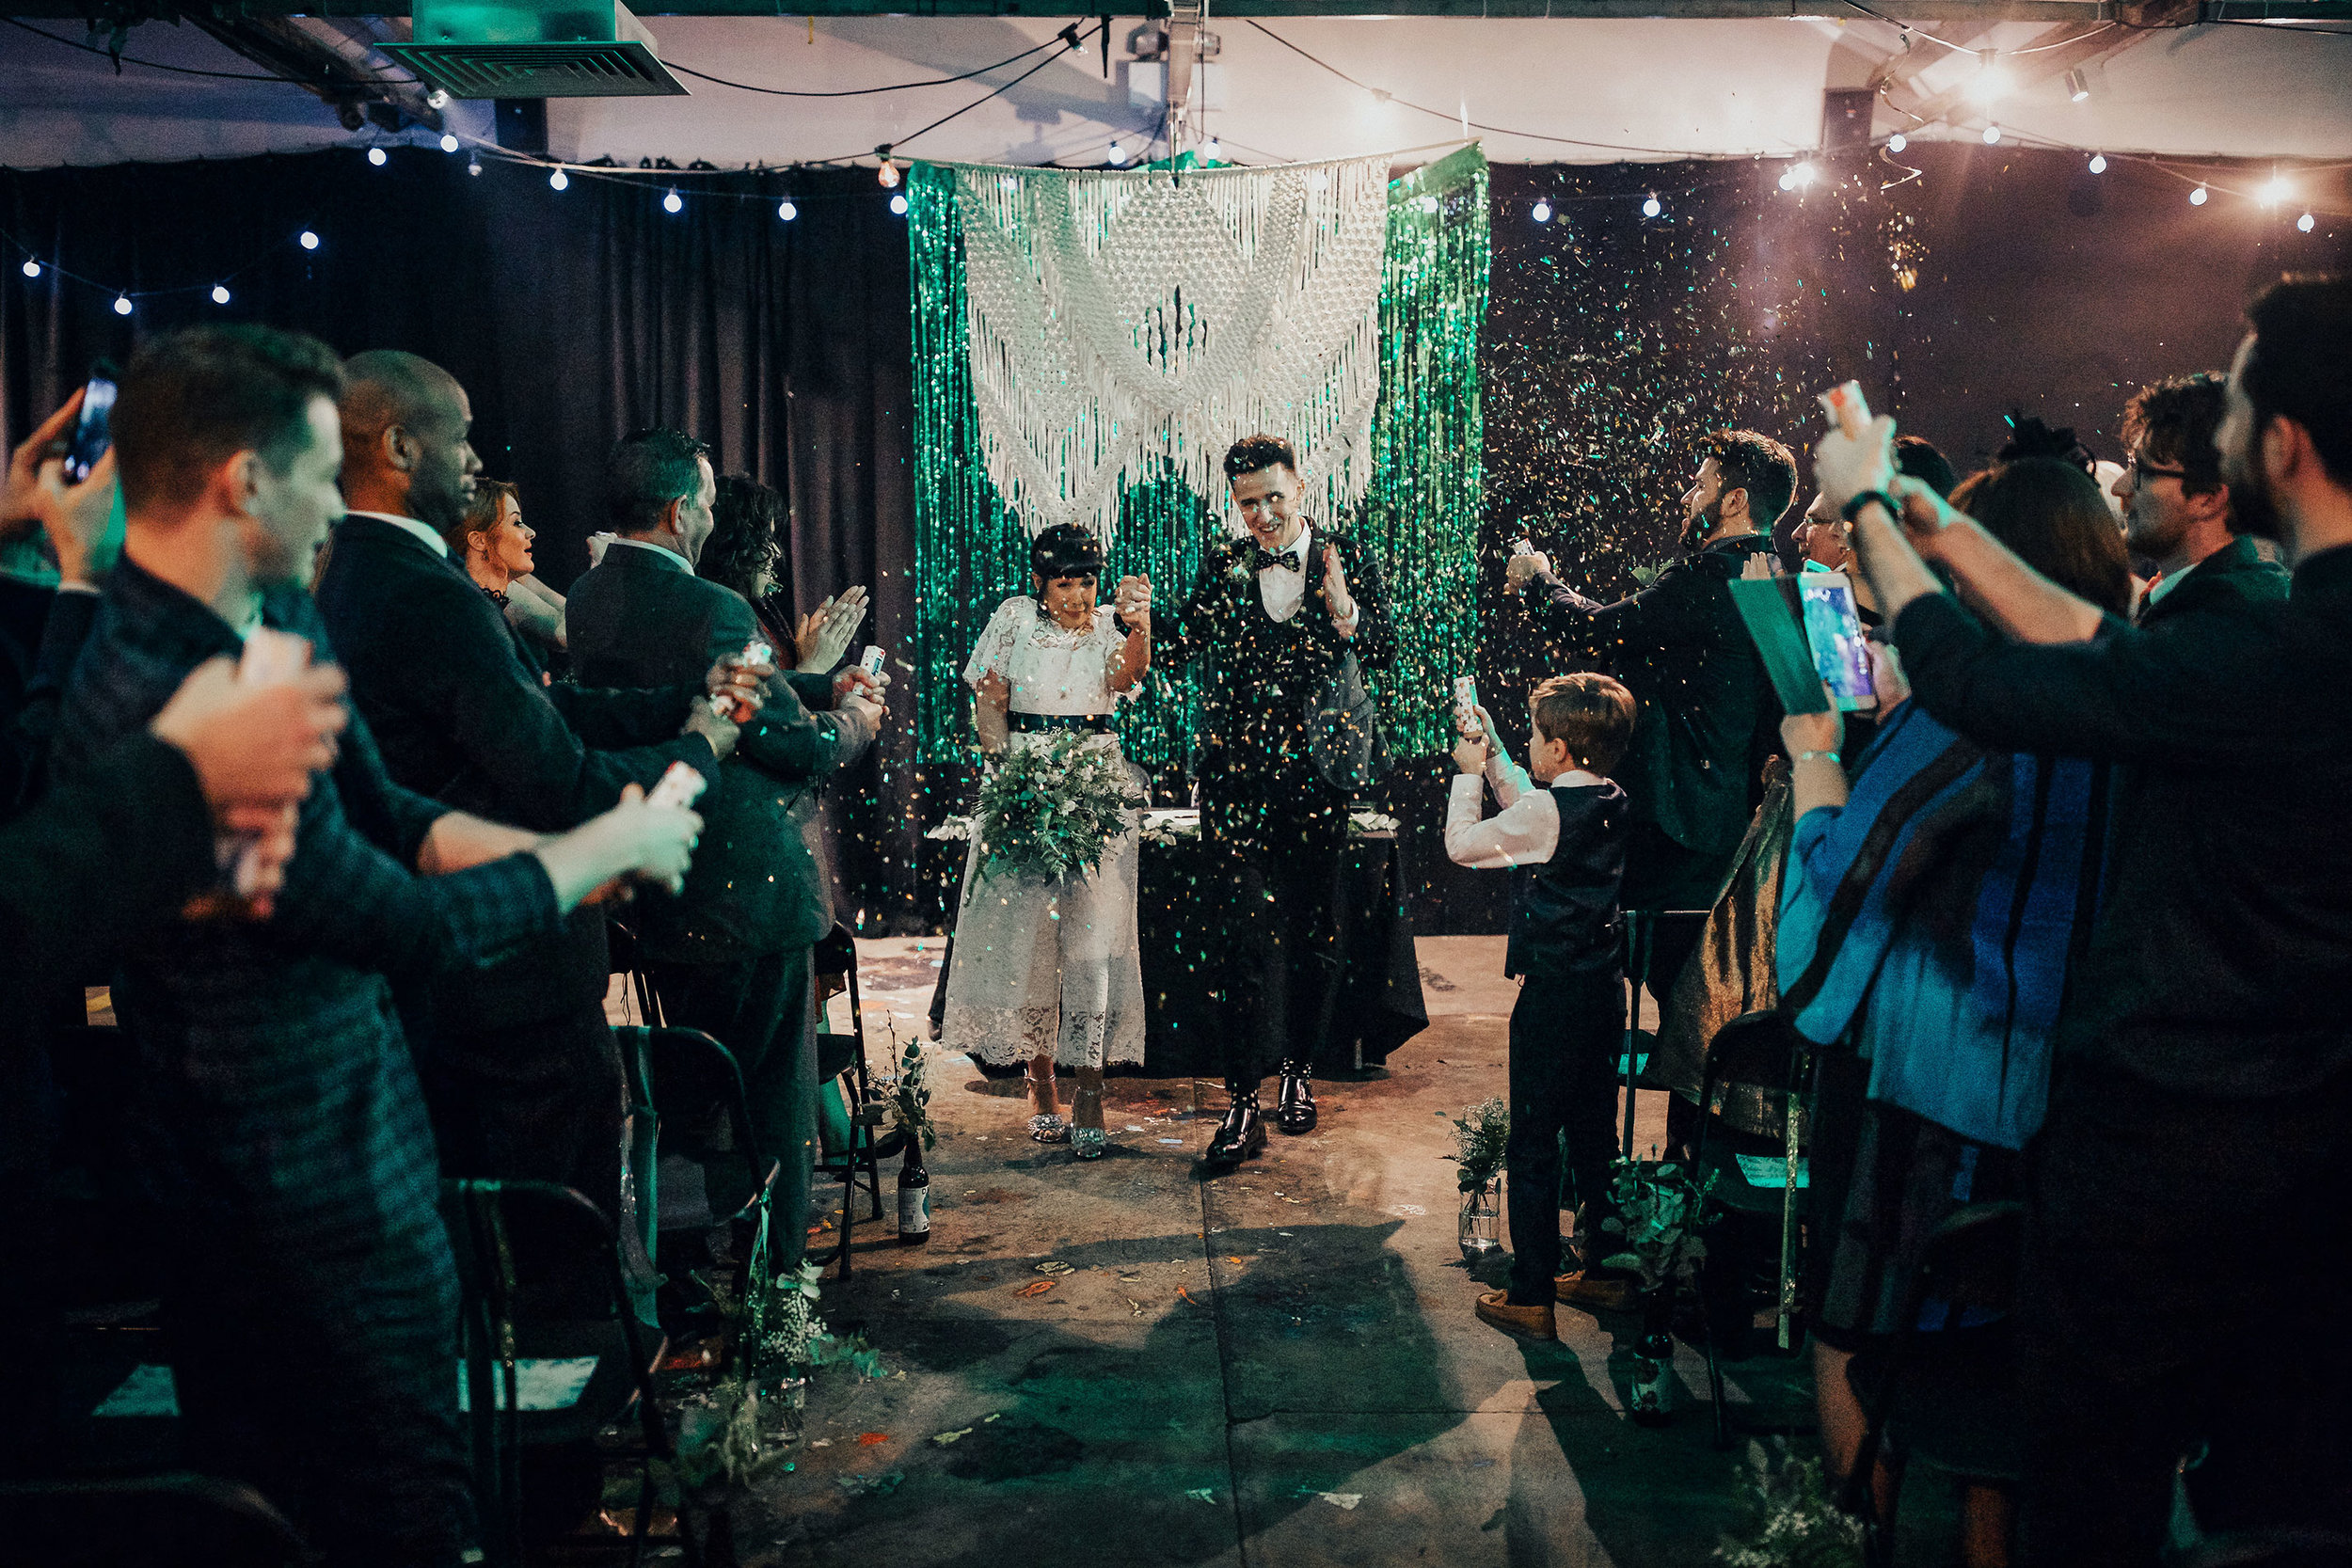 DRYGATE_WEDDING_PHOTOGRAPHER_PJ_PHILLIPS_WEDDING_PHOTOGRAPHY_69.jpg